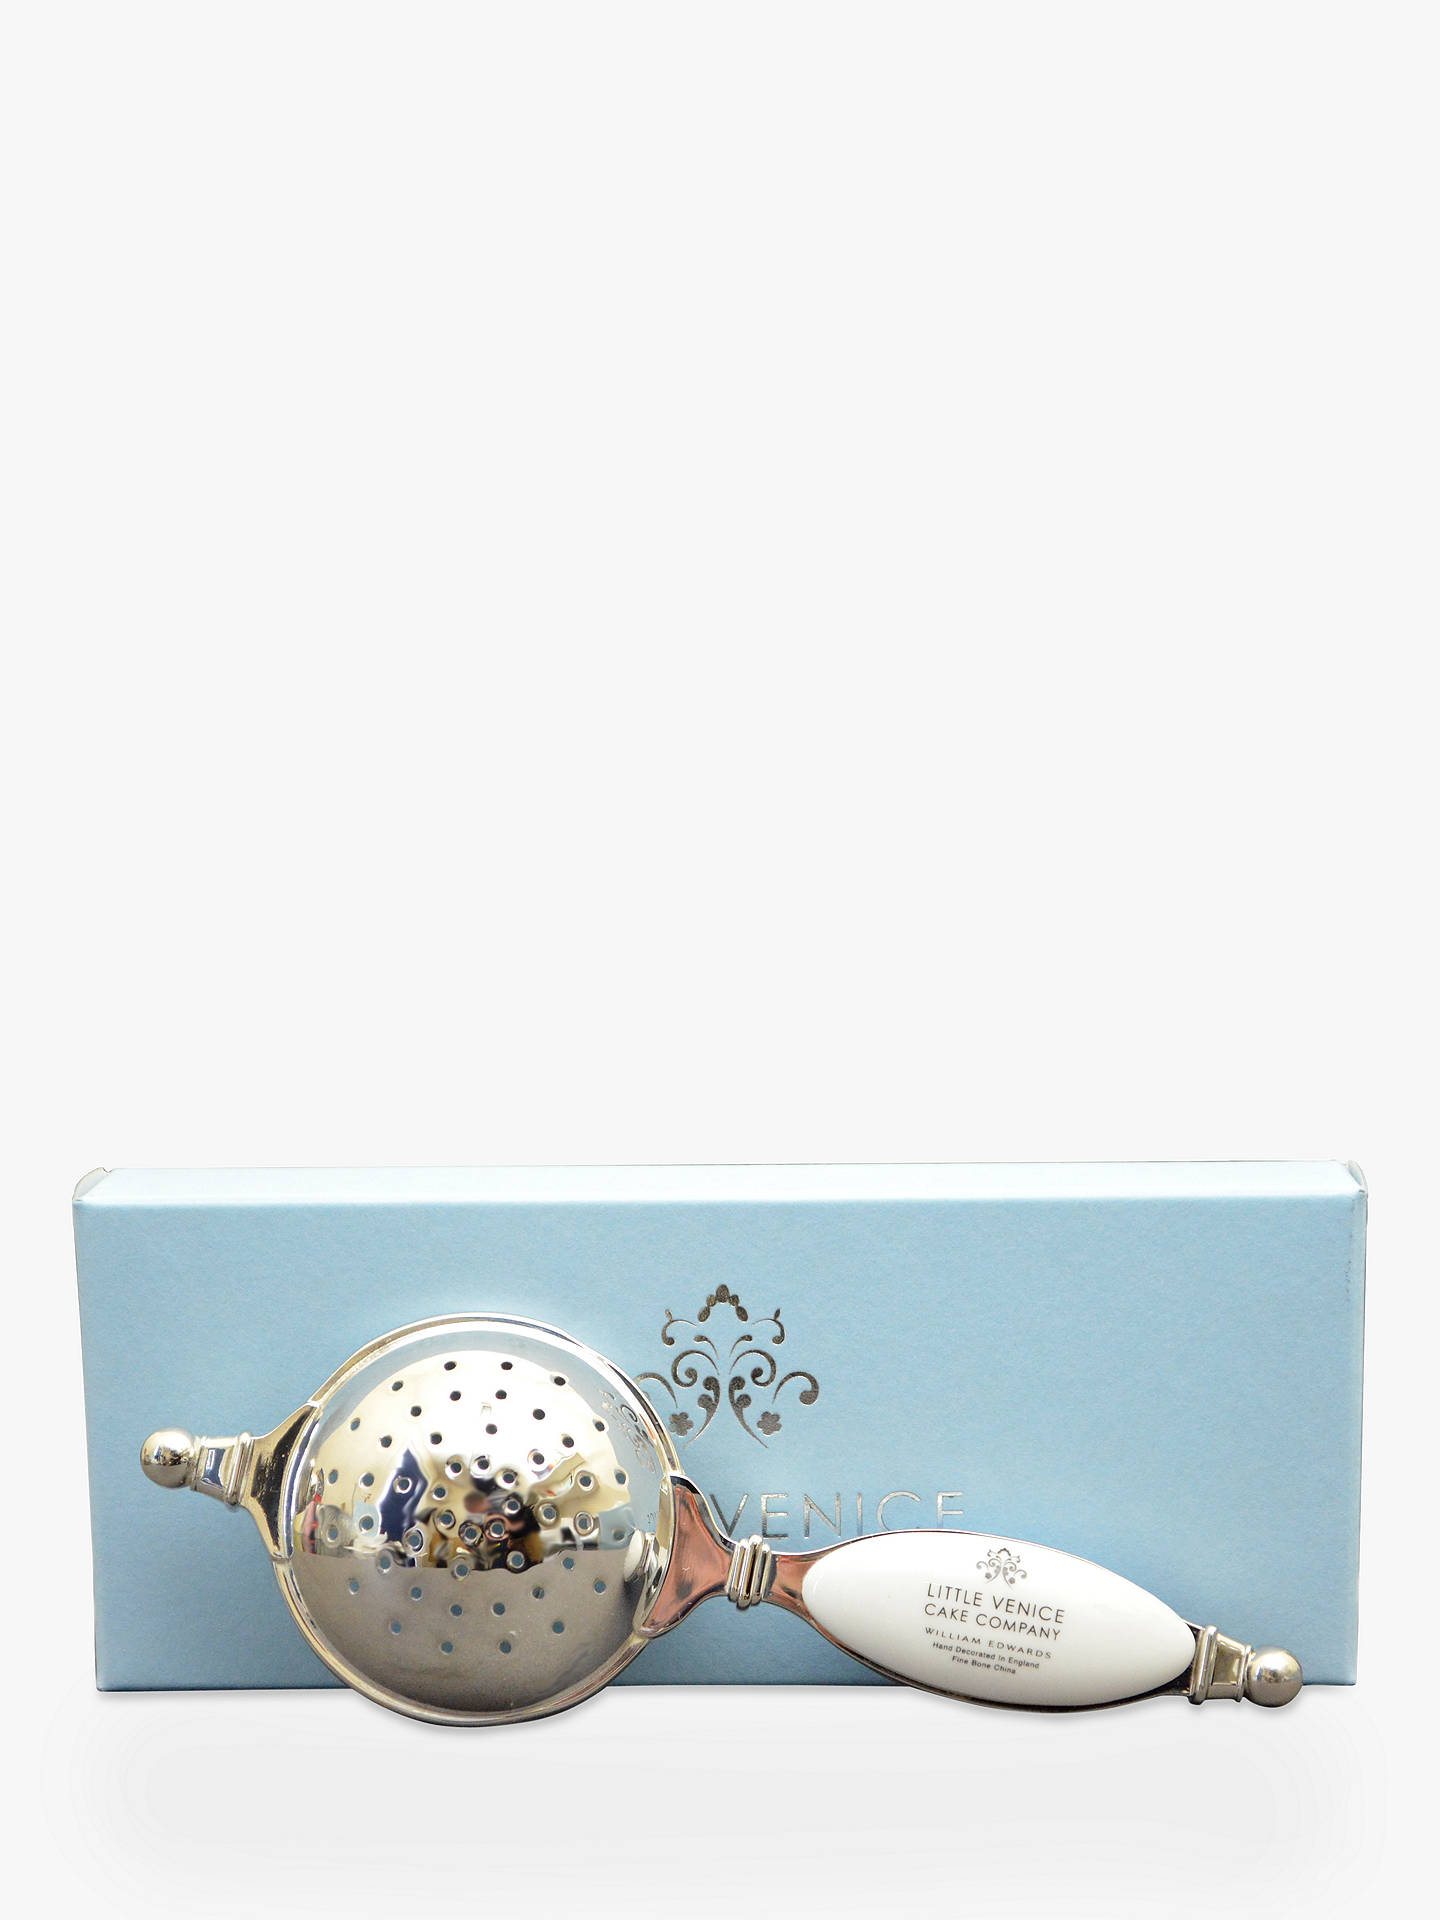 Buy Little Venice Cake Company Striped Tea Strainer, Blue/White Online at johnlewis.com